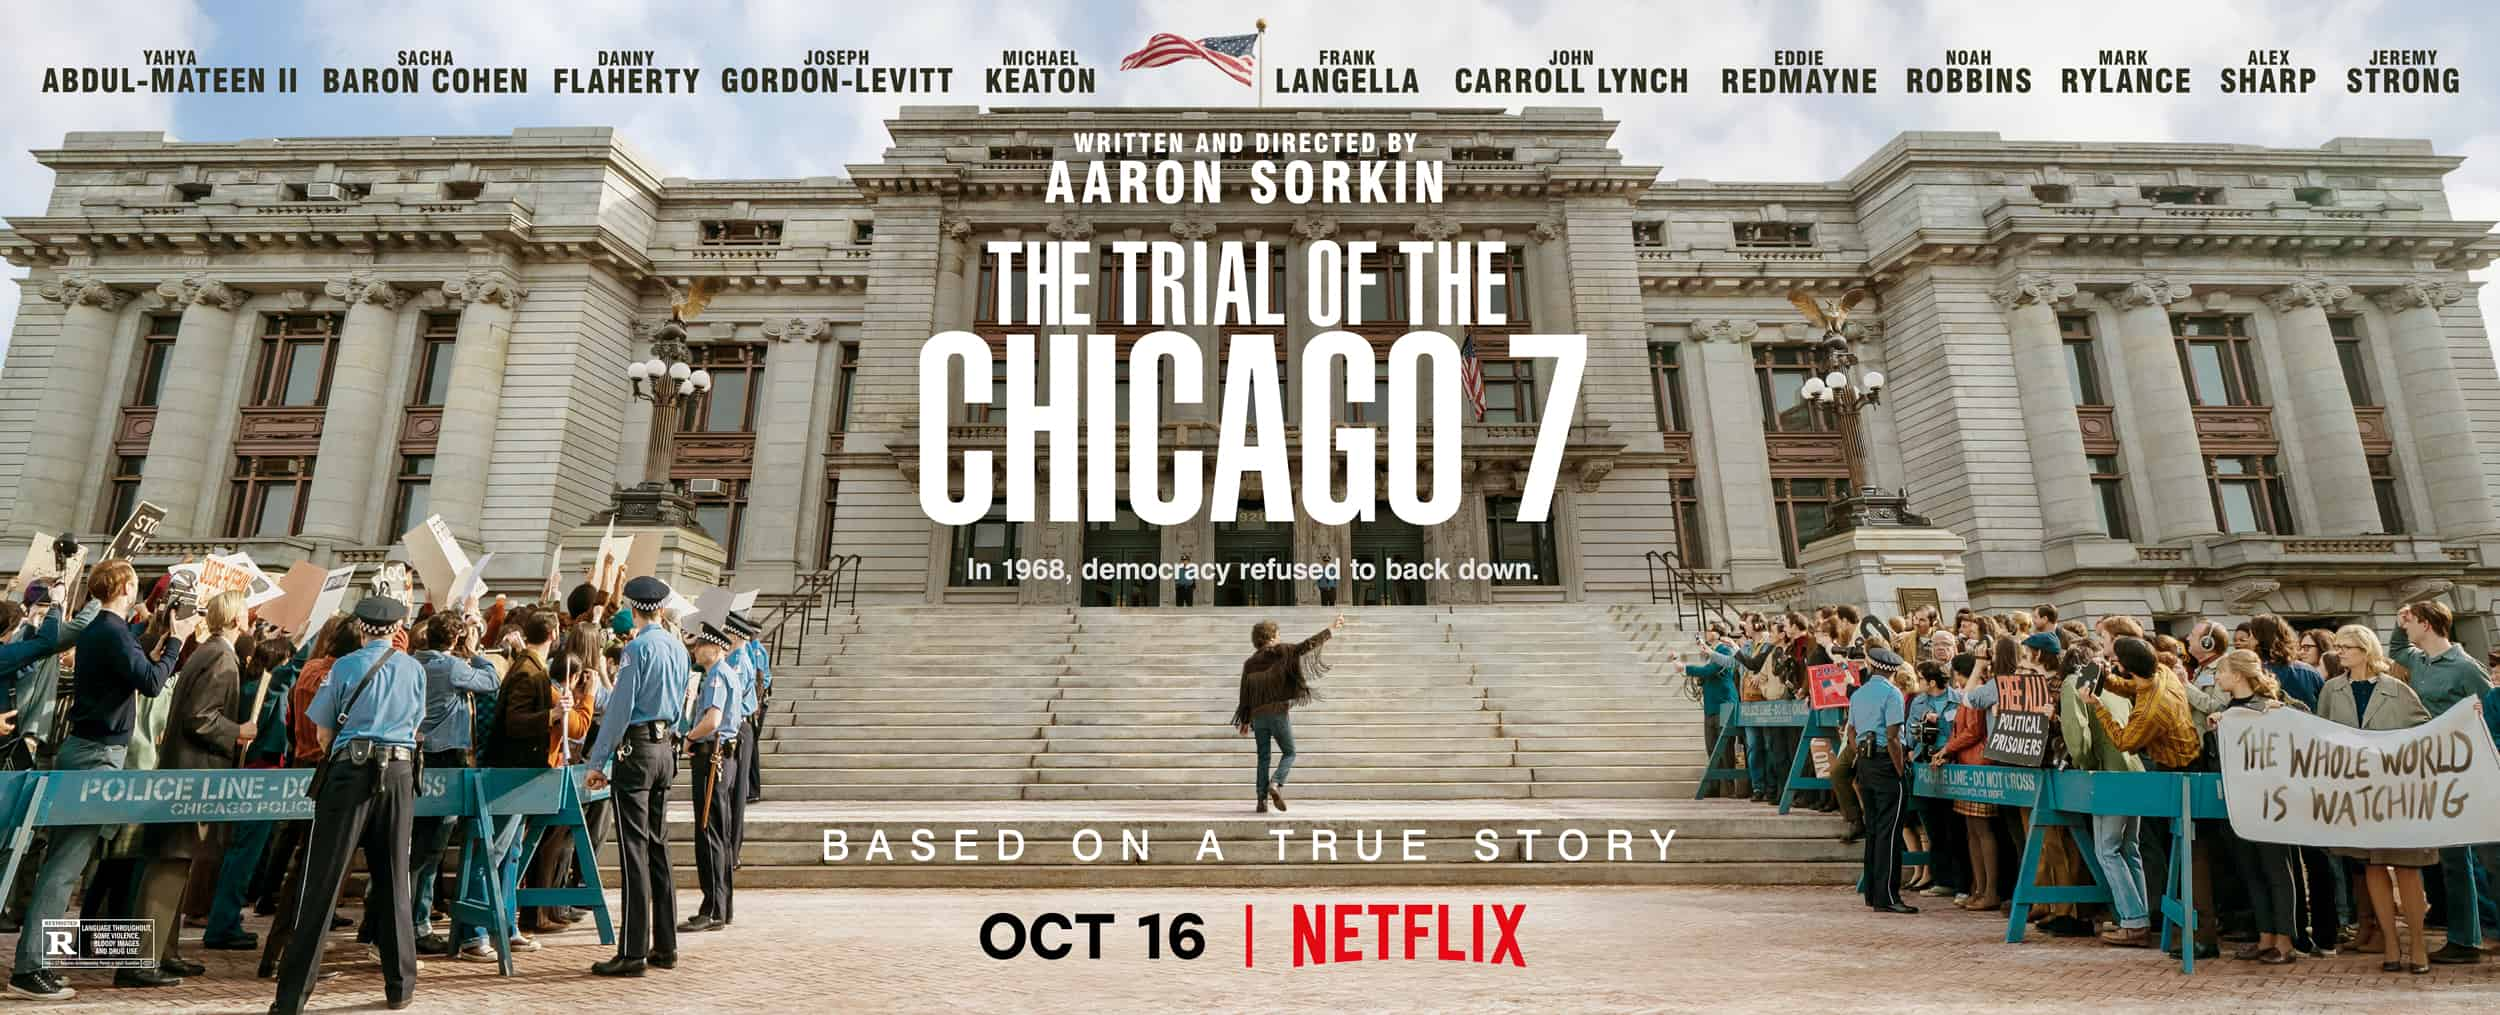 The Trial of the Chicago 7 movie banner